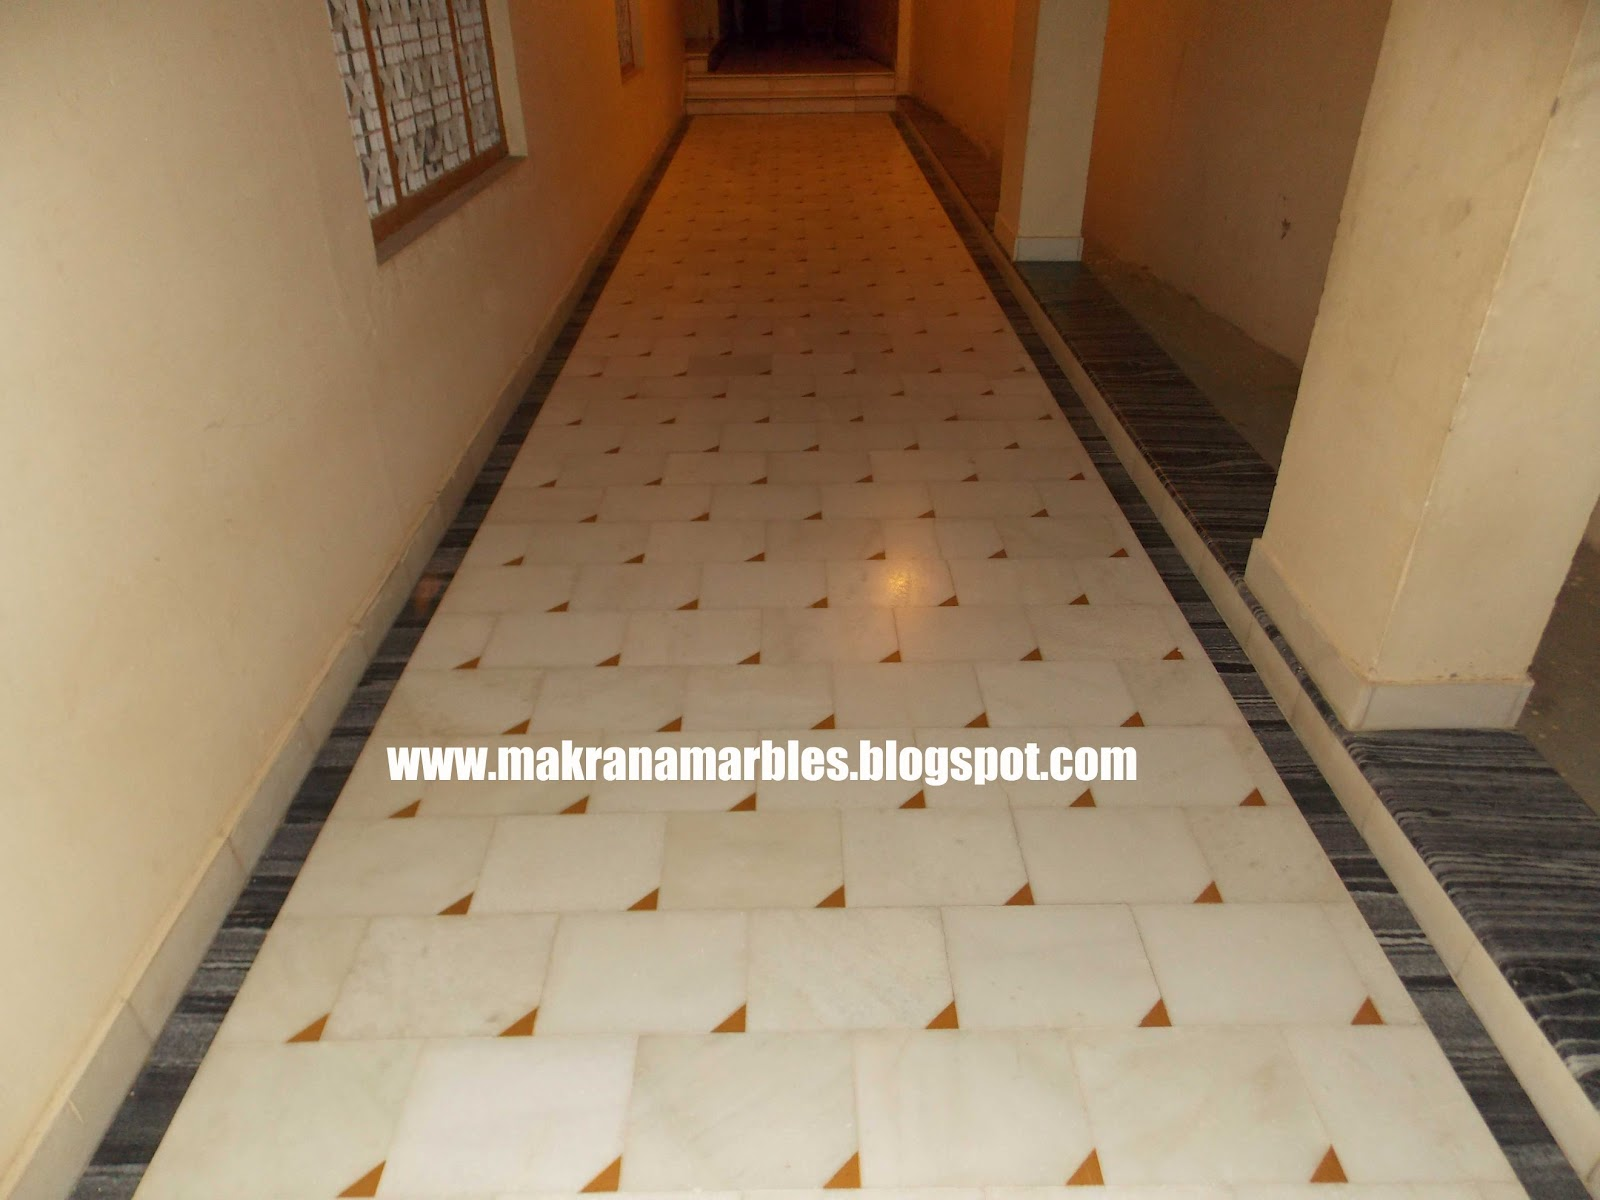 Makrana marble product and pricing details flooring pattern for Floor tiles design